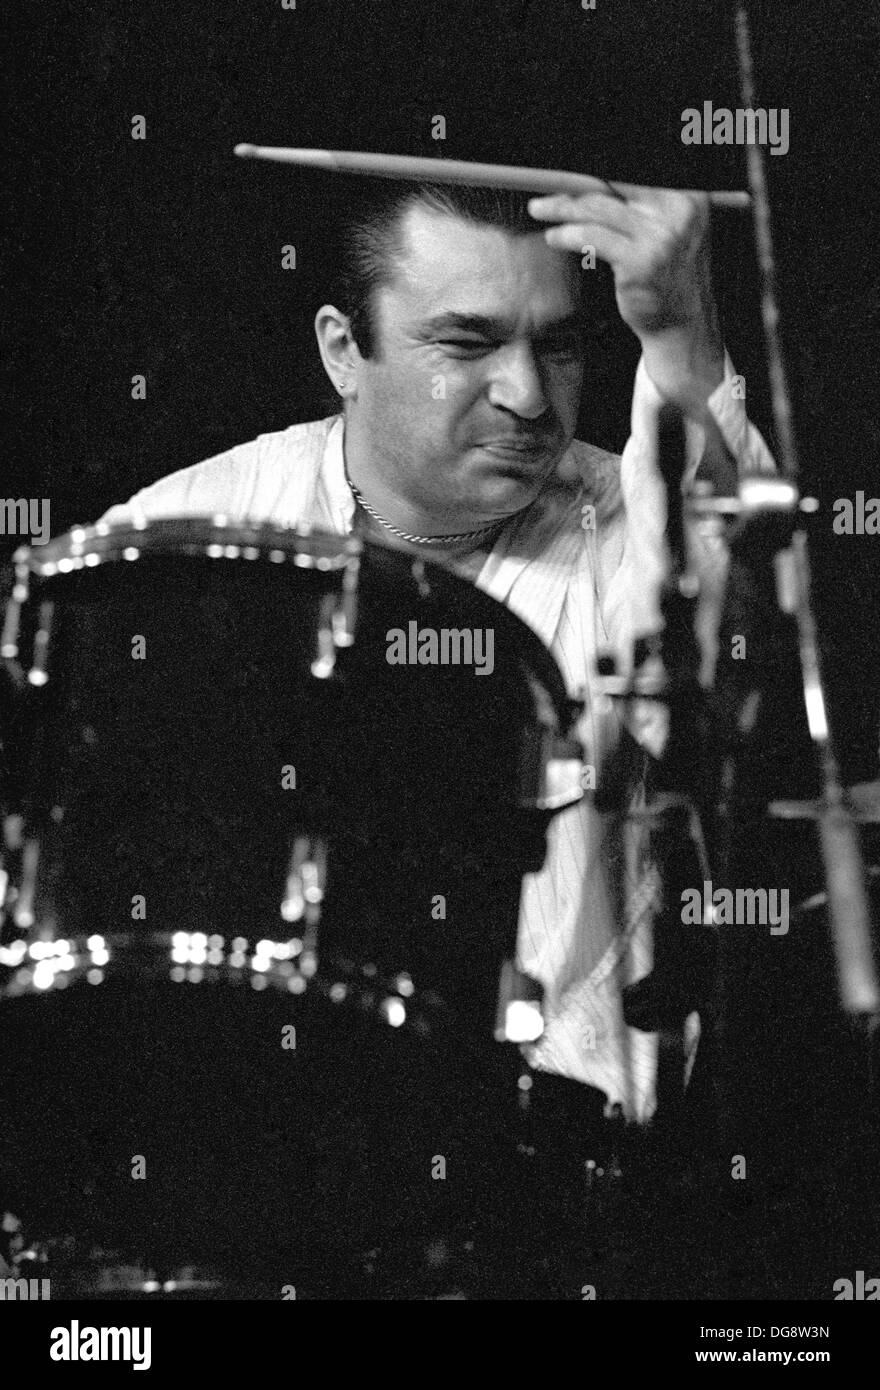 Drummer-Bob-Harrison-performing-live-in-